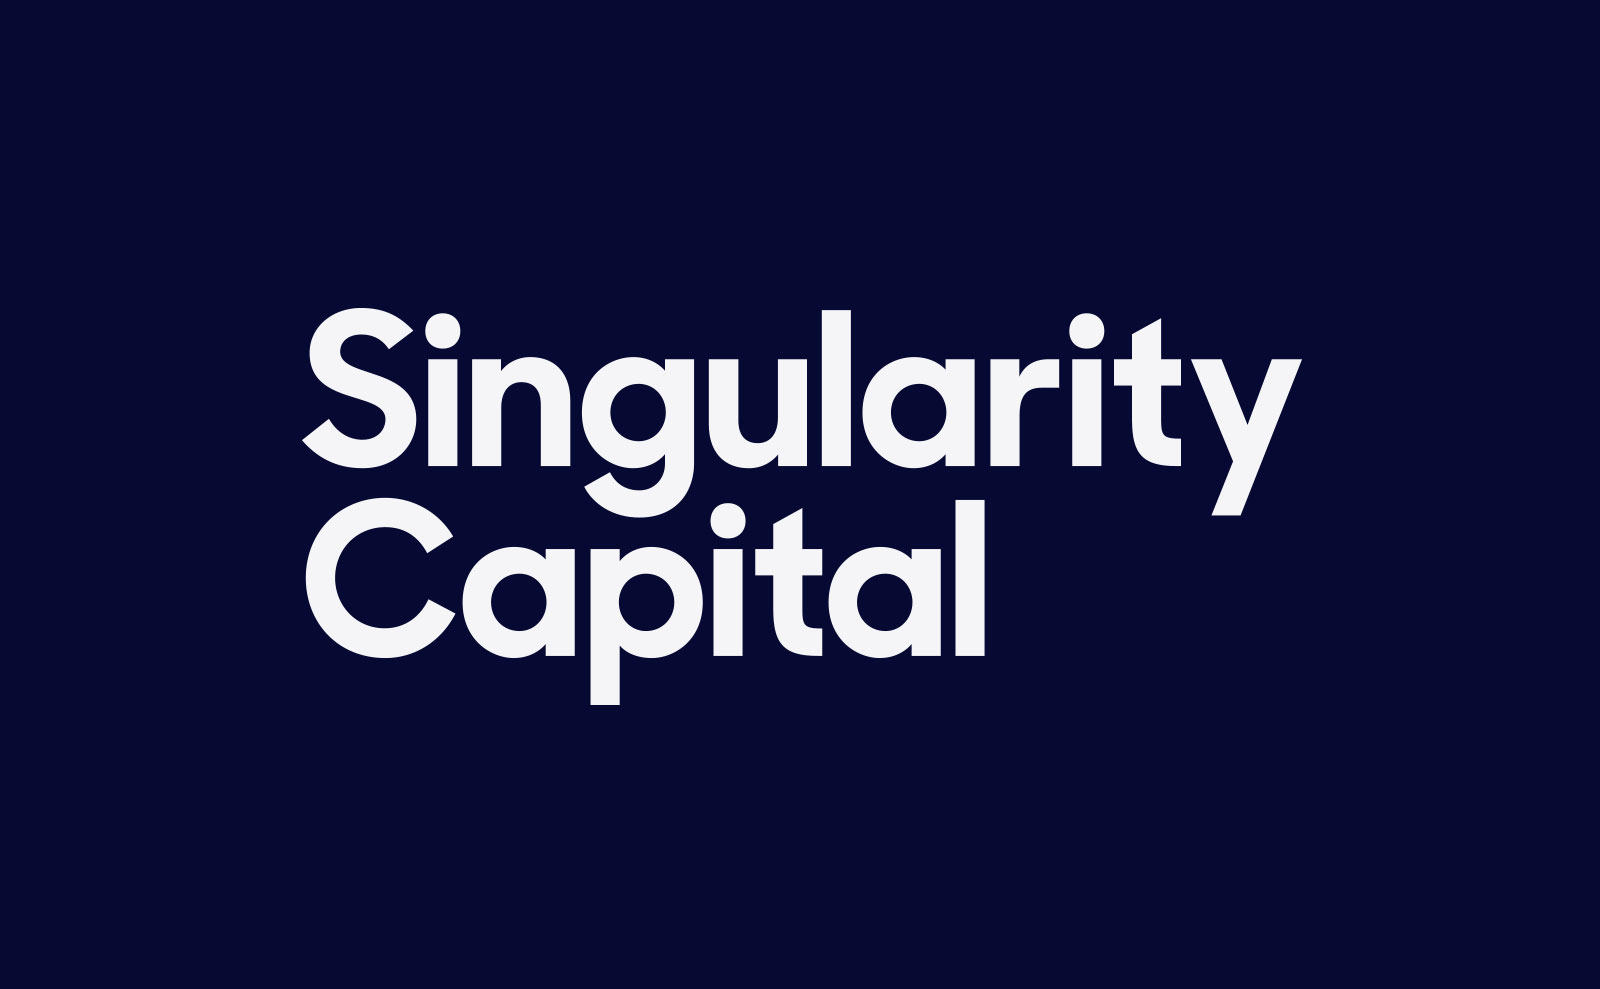 SGH Capital logo design